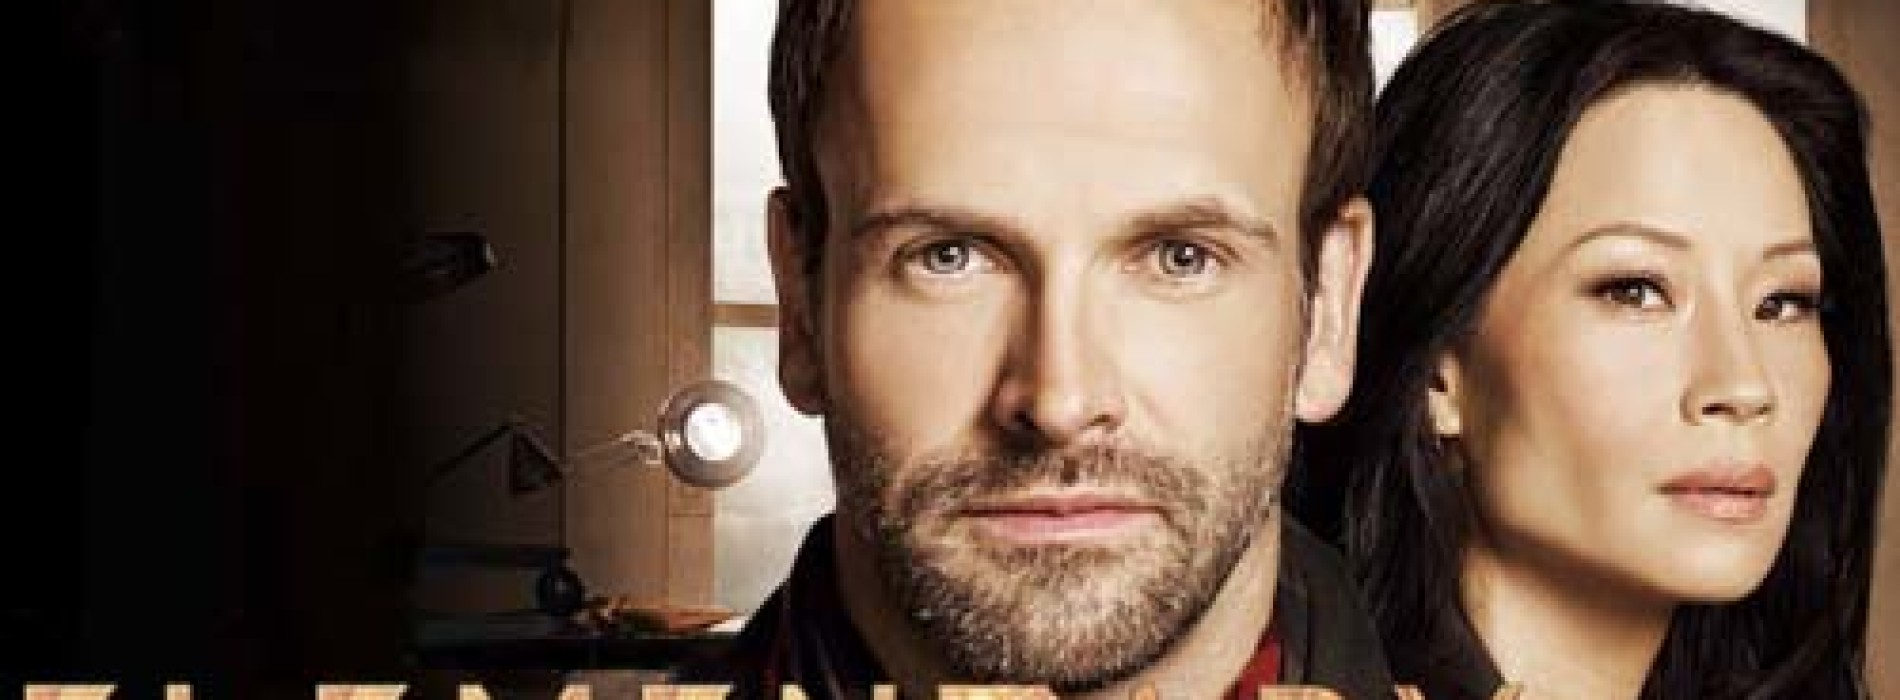 Producer Clarence Jey Has Work Featured On The US Tv Show 'Elementary'